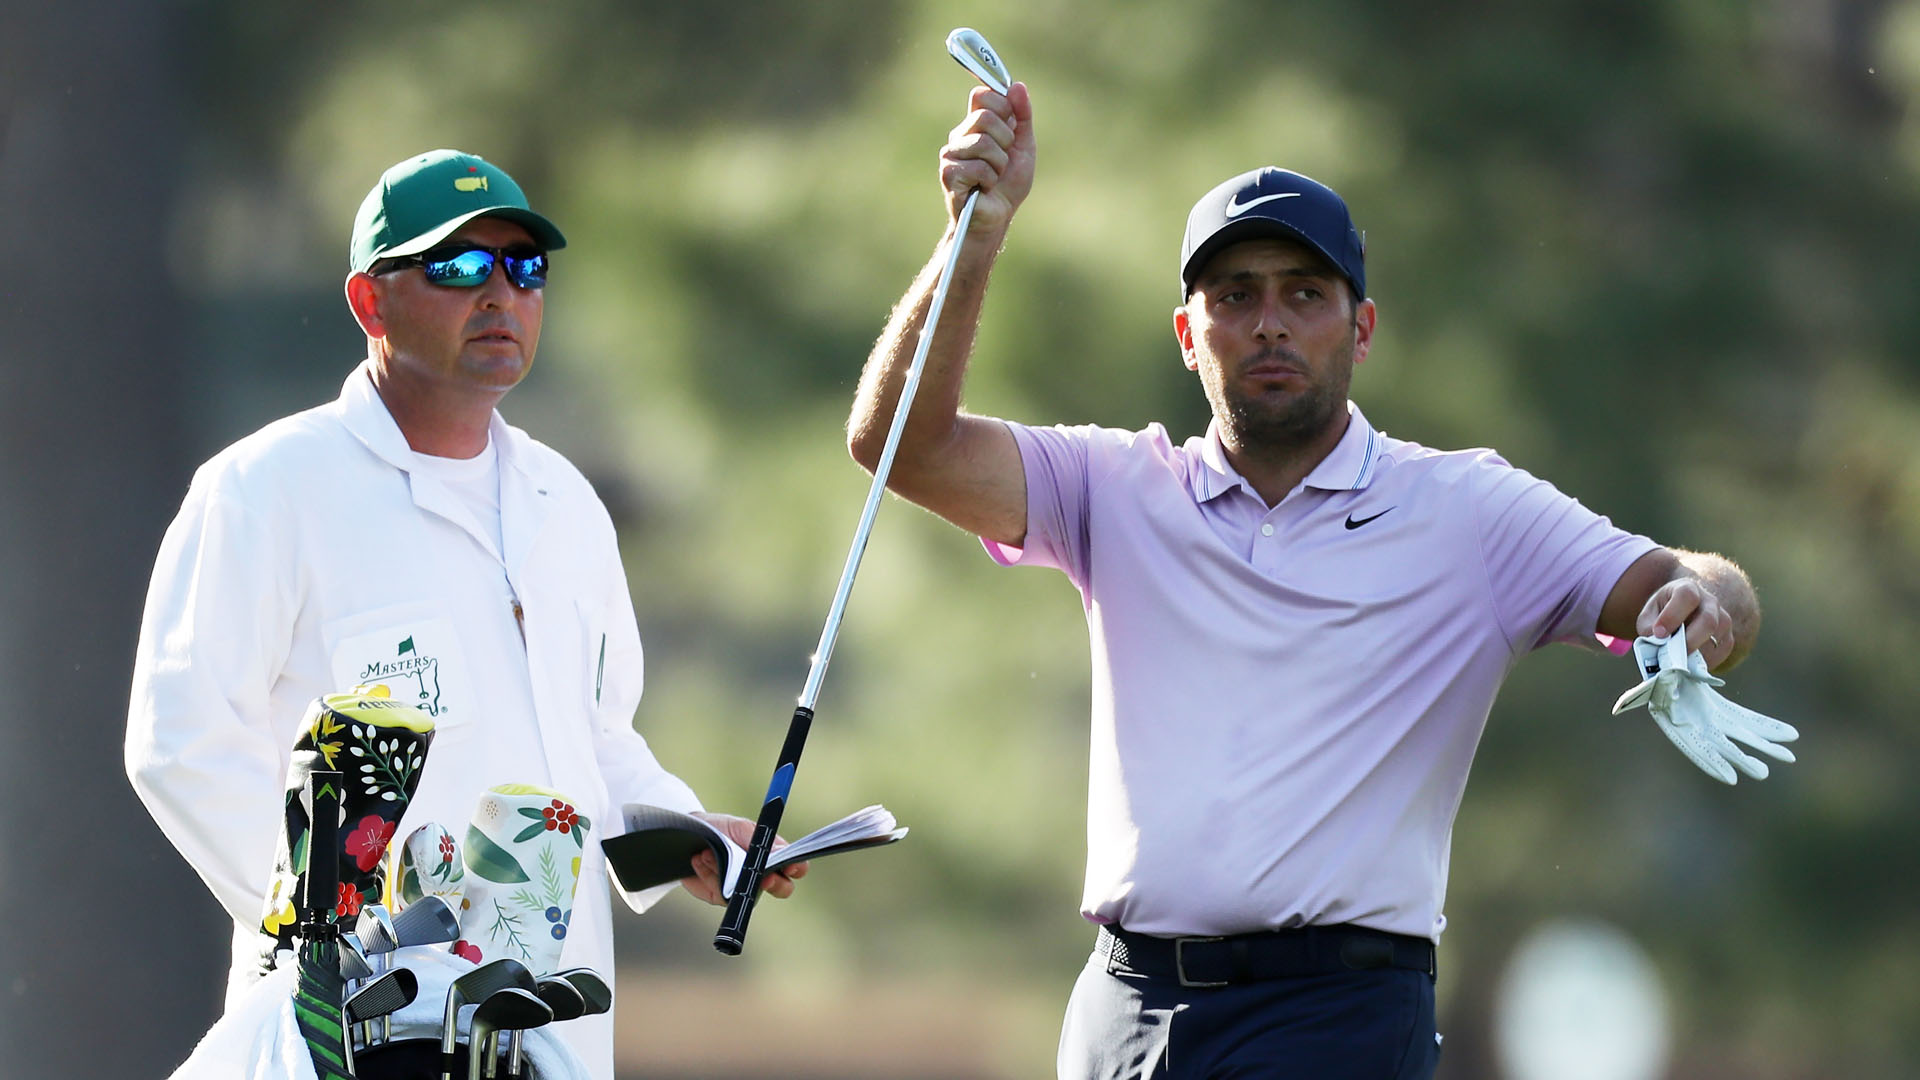 Masters 2019: Francesco Molinari once again finds himself in duel with Tiger Woods